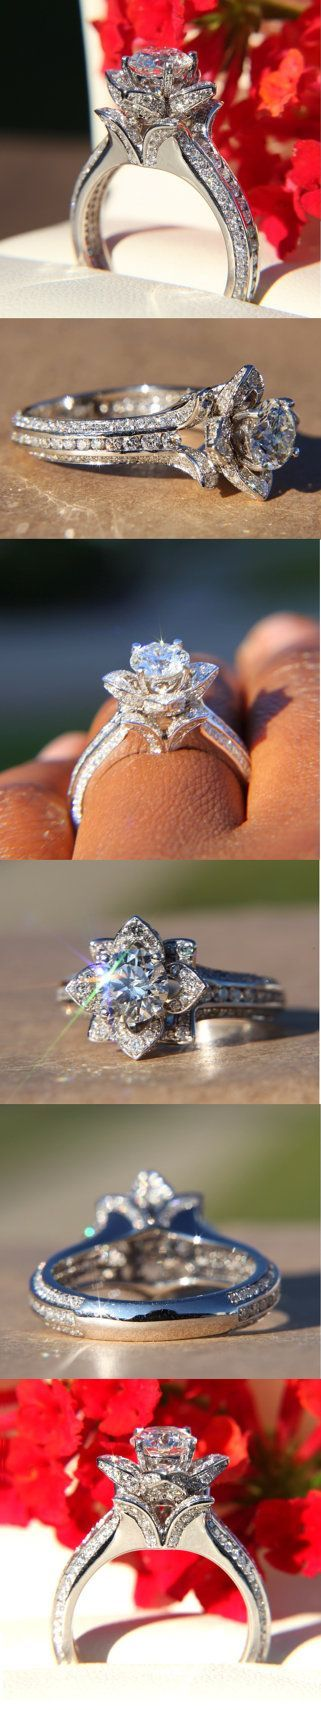 UNIQUE Flower Rose Diamond Engagement or Right Hand Ring - 2.20 carat - 14K white gold - wedding - brides - fL01